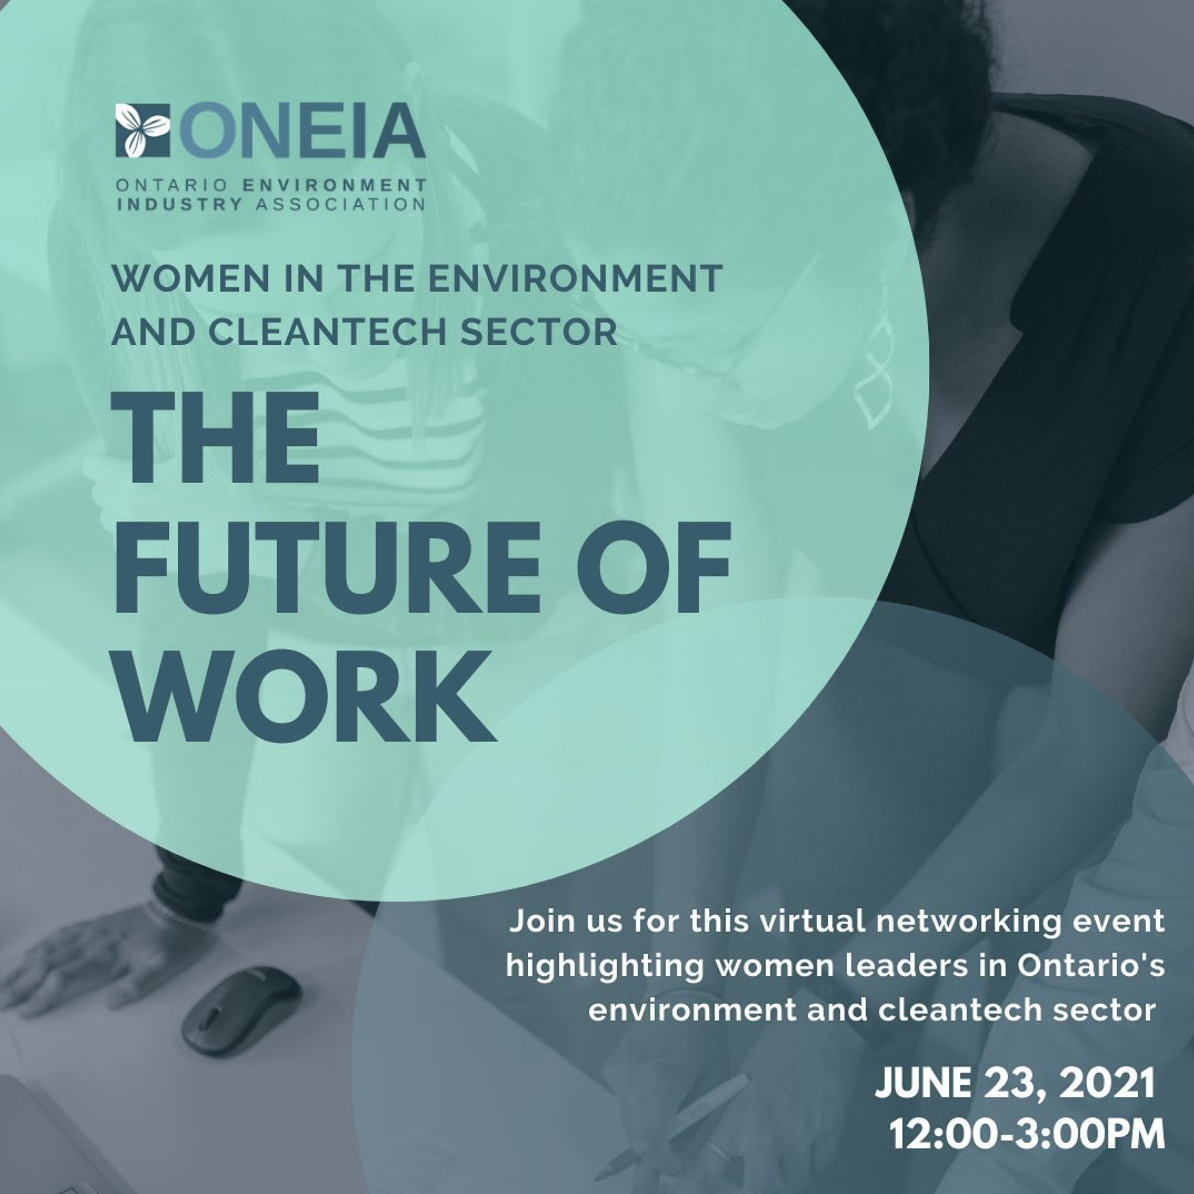 The Future of Work: Women in the Environment and Cleantech Sector